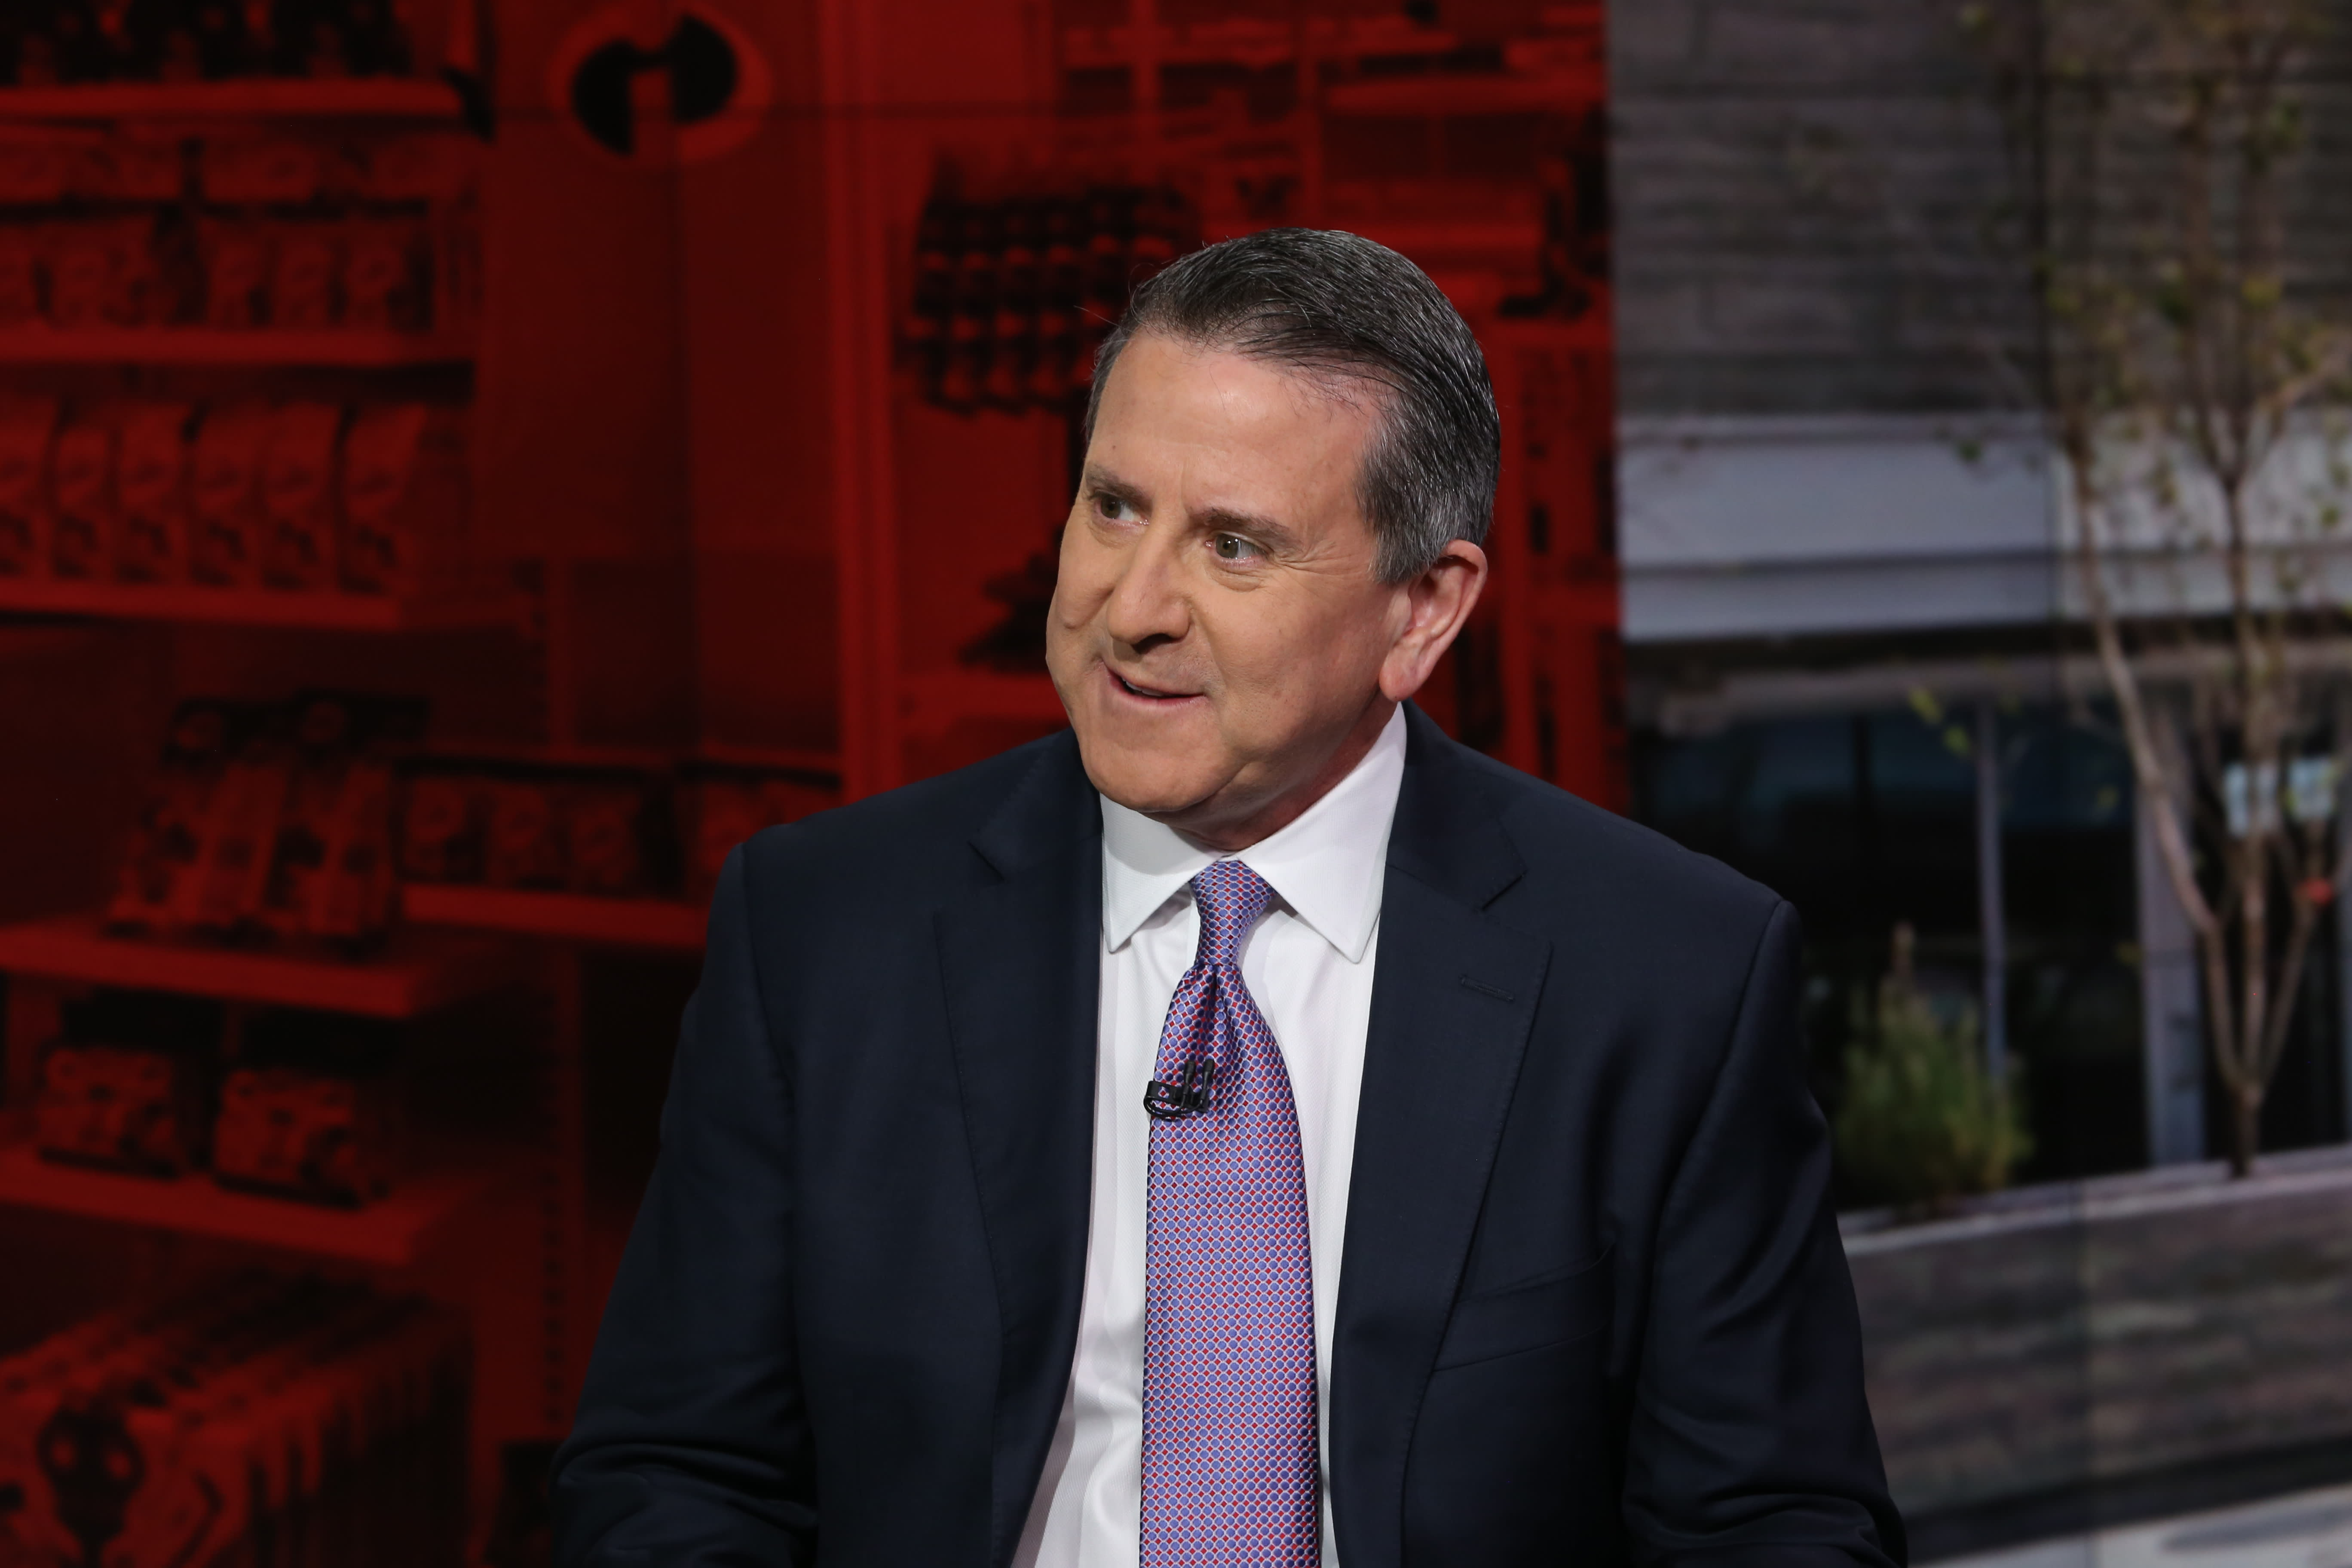 Target CEO Brian Cornell says George Floyd's murder pushed him to do more about racial equity, diversity